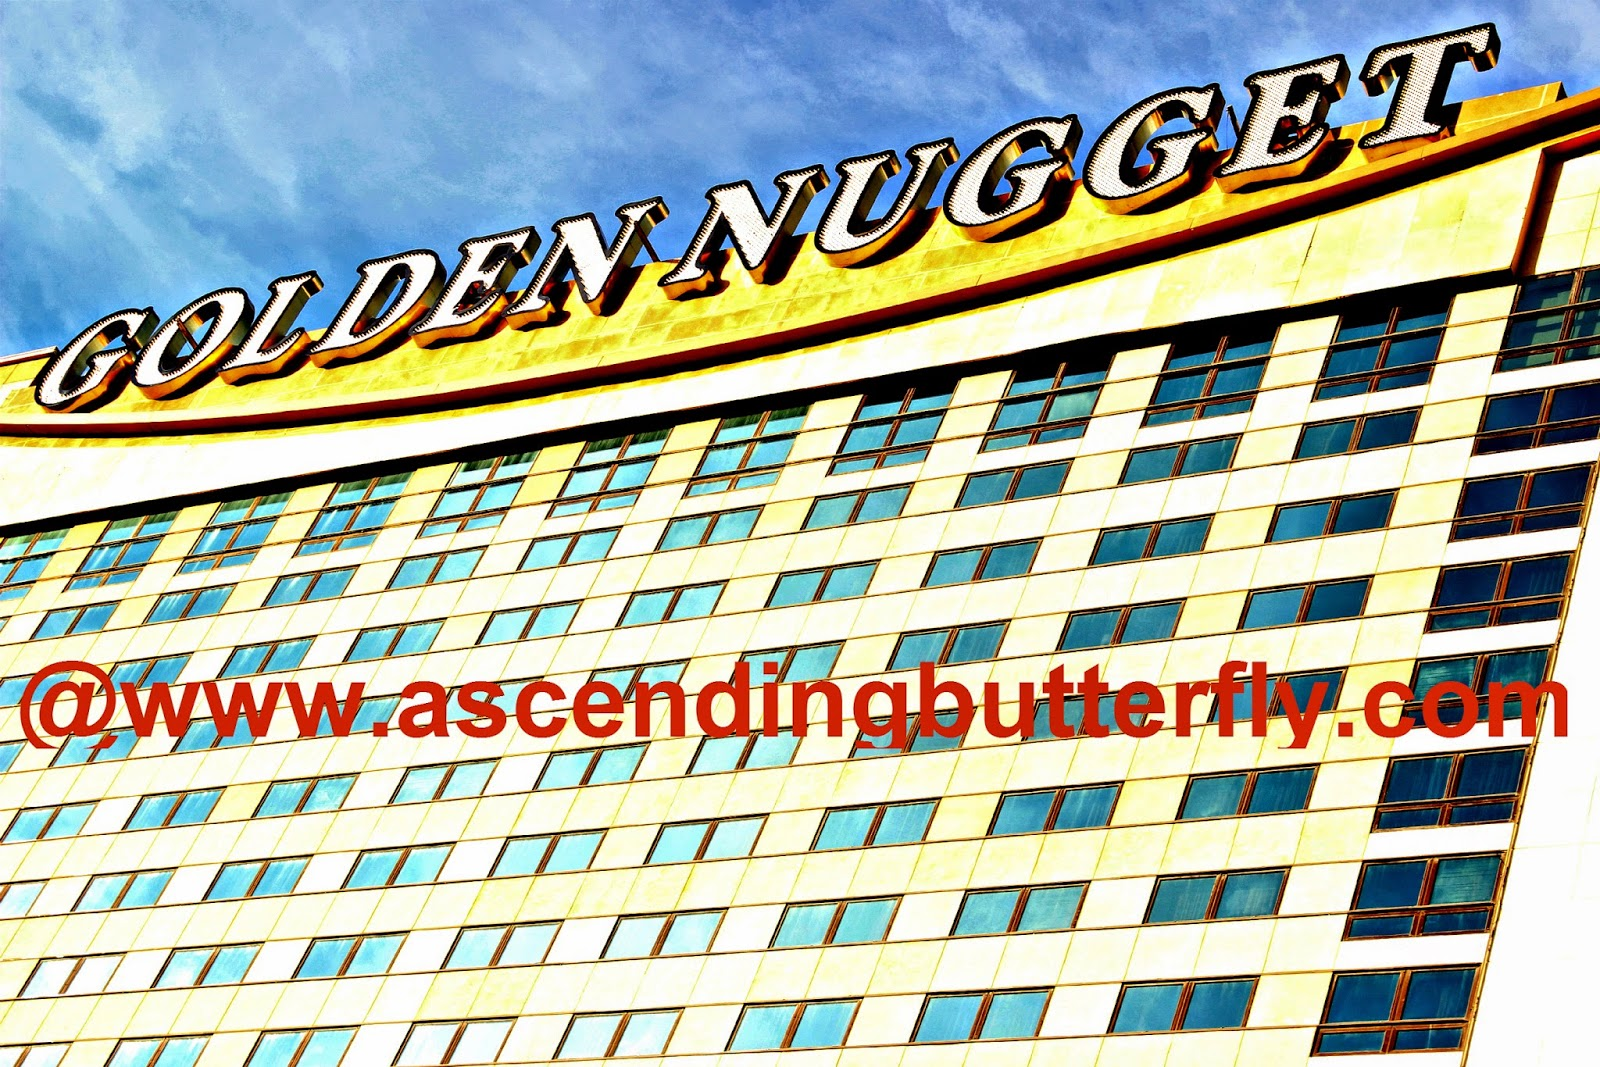 Atlantic City, Visit AC, Atlantic City Alliance, DO AC, Golden Nugget Casino